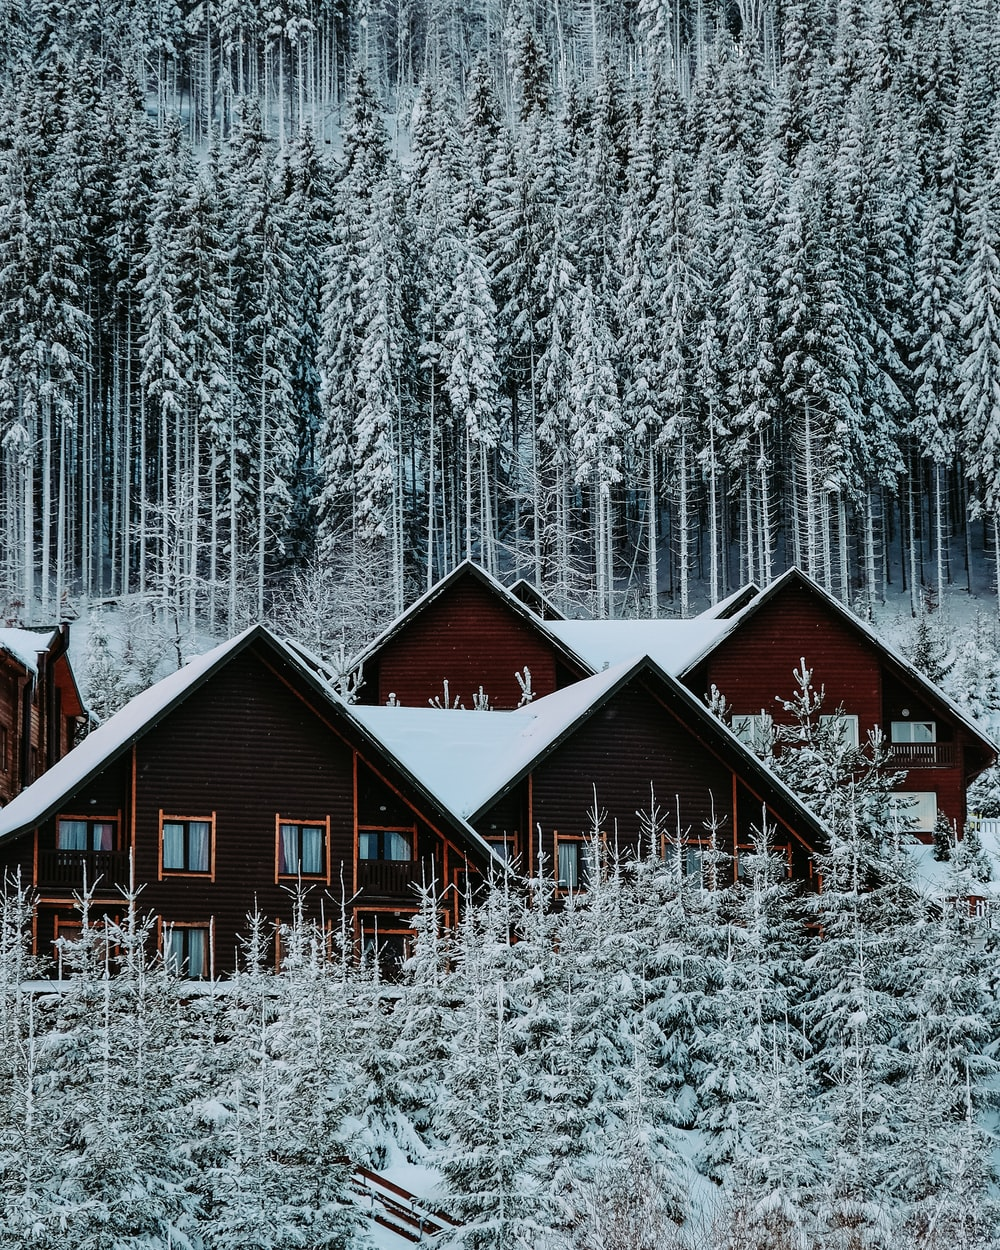 brown wooden house in the middle of snow covered forest